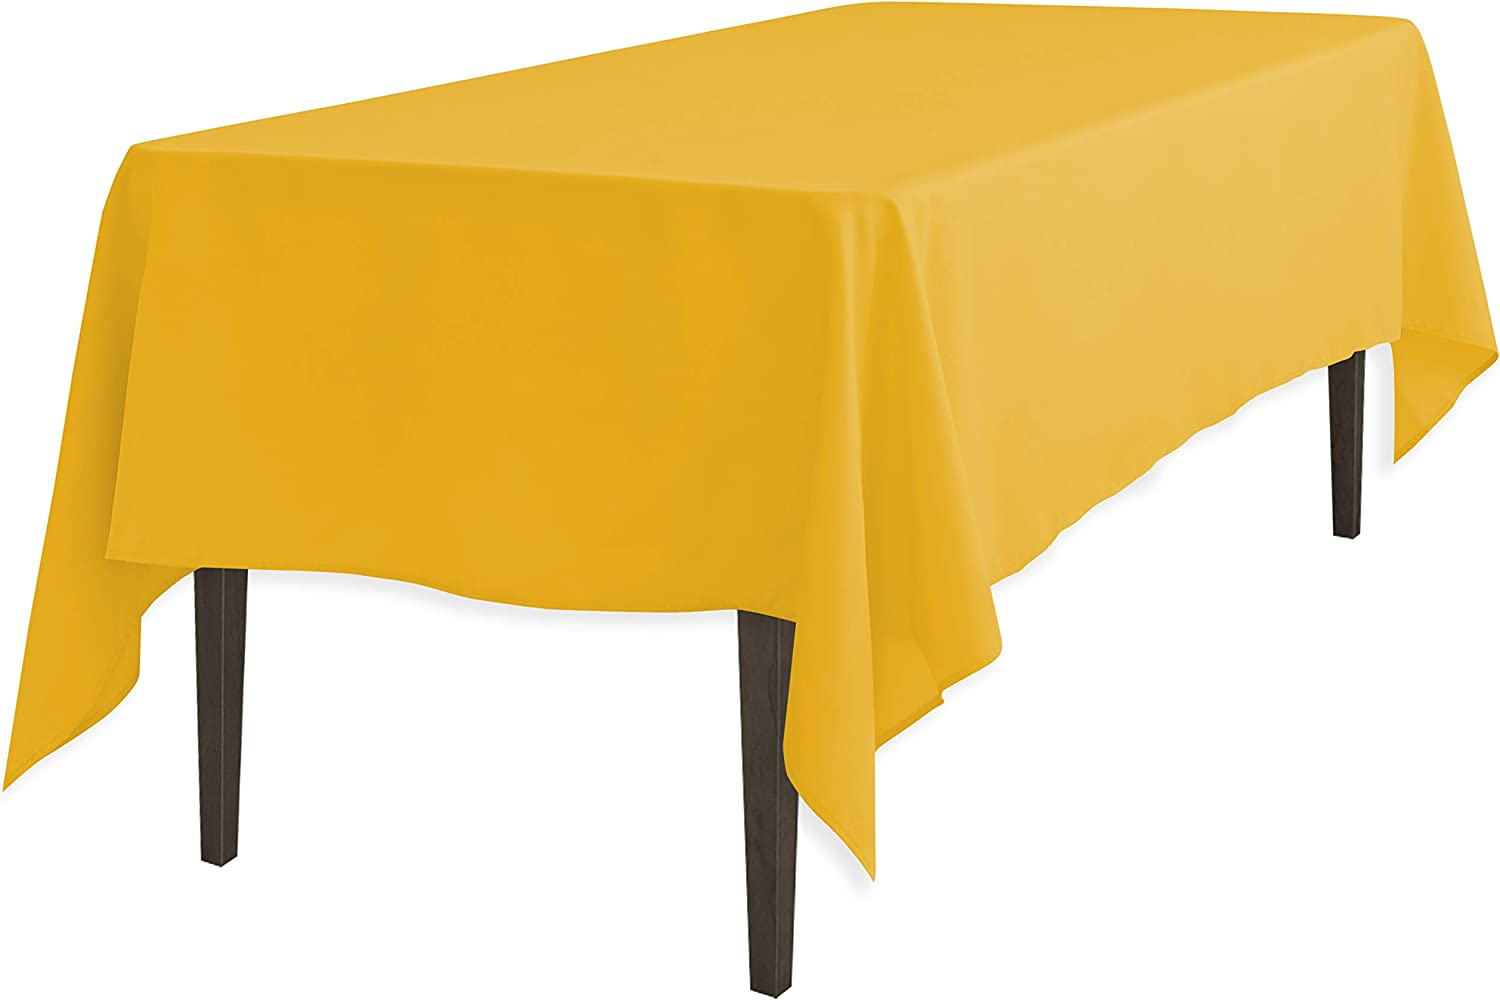 LinenTablecloth Rectangular Polyester Tablecloth, 60Inch by 126Inch, gold